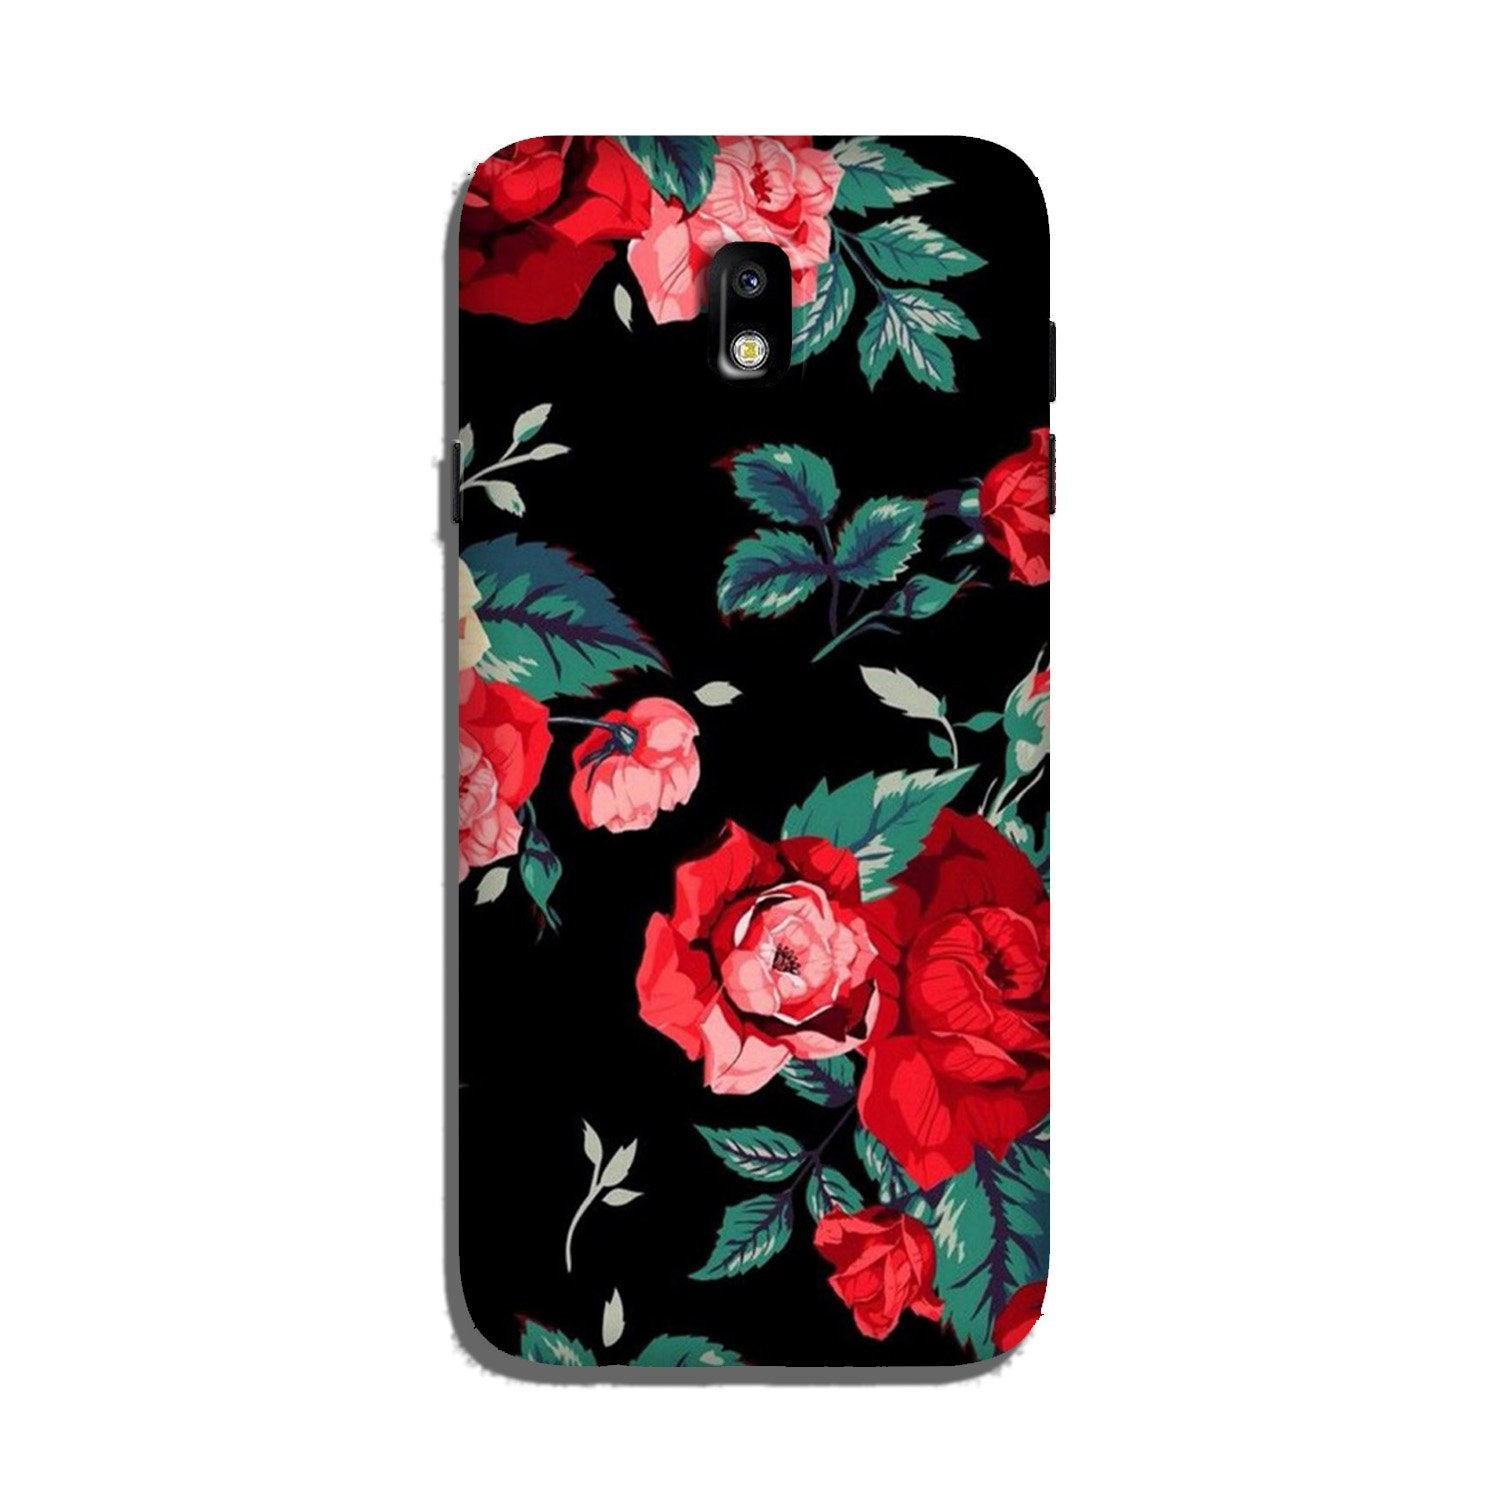 Red Rose2 Case for Galaxy J3 Pro